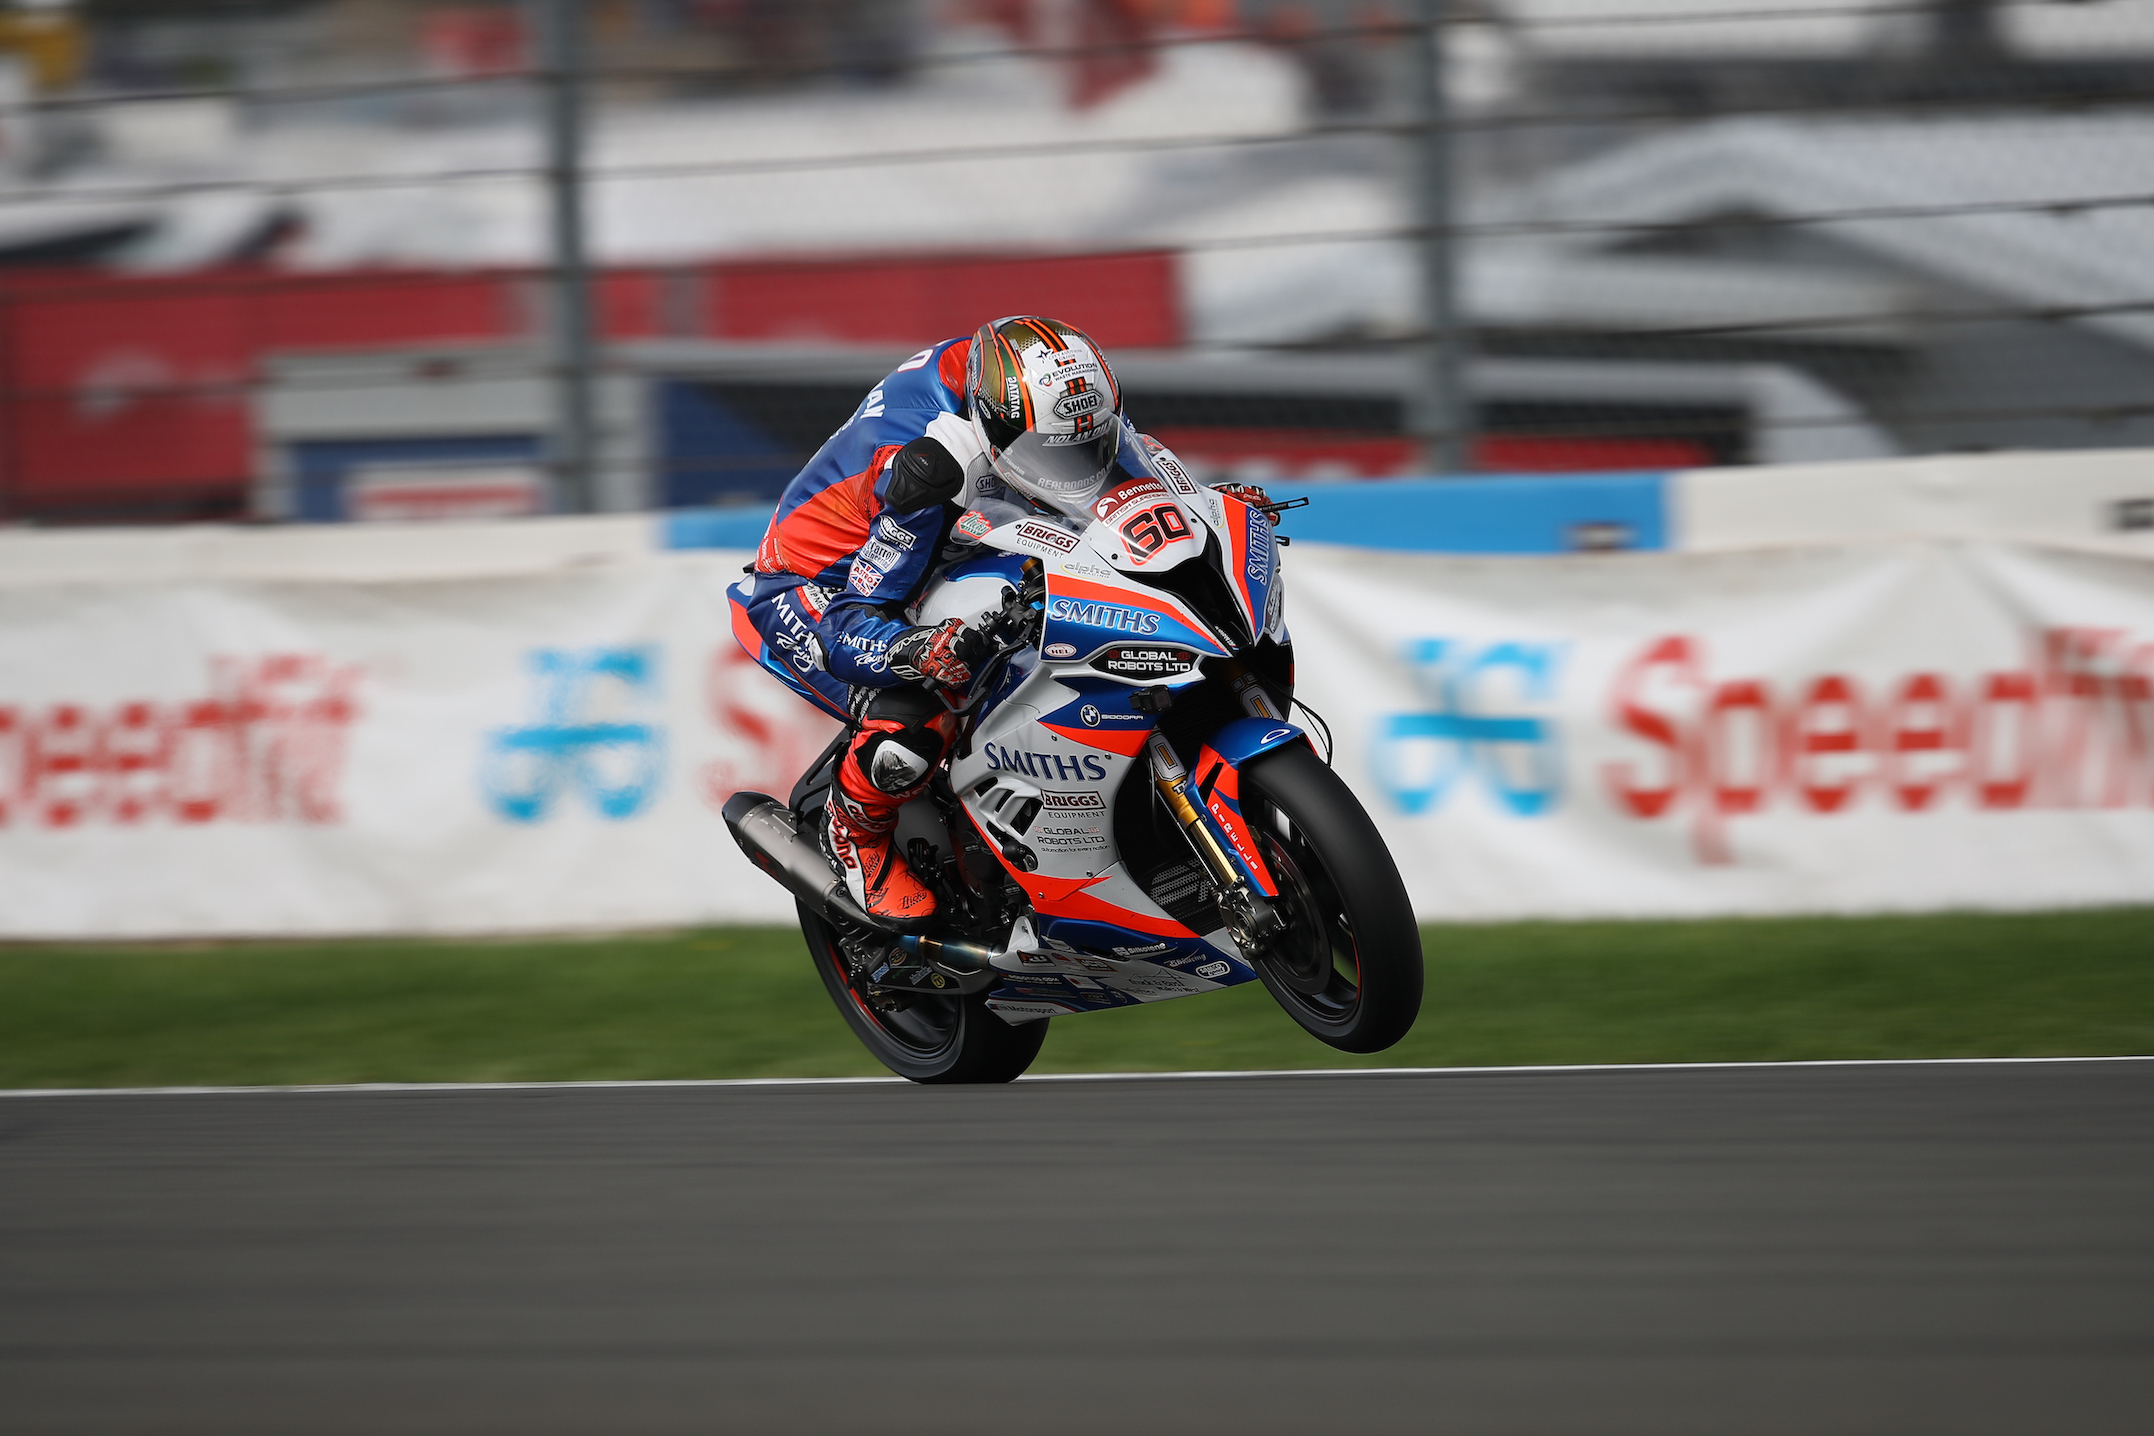 Peter Hickman racing at Donington Park